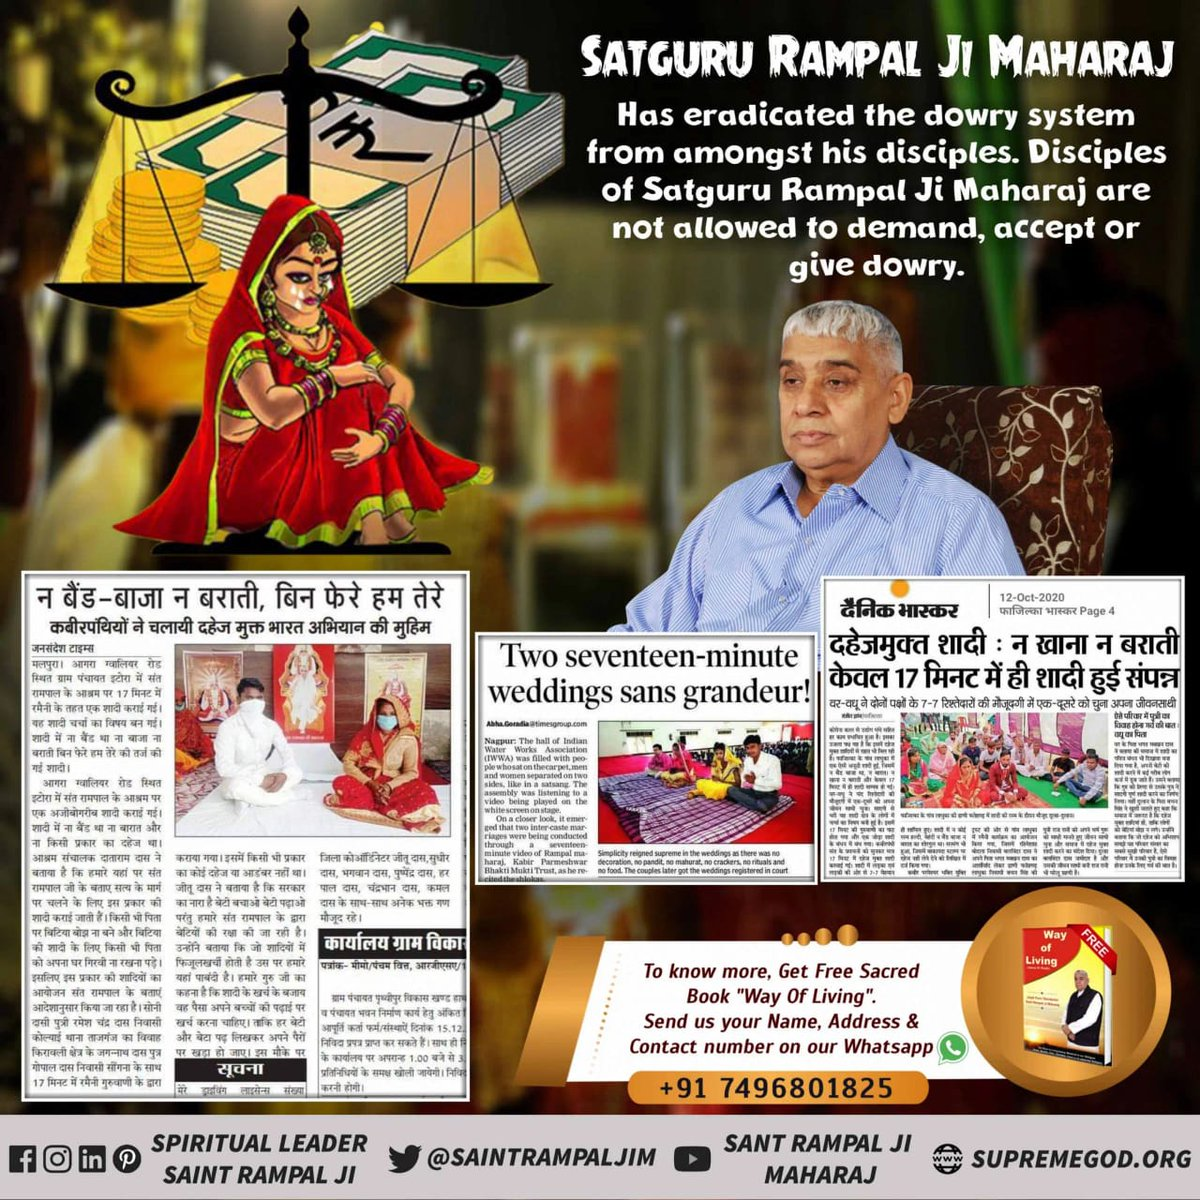 Saint Rampal Ji Maharaj is ending the dowry demon with his philosophy, ,,  a few days later, with the knowledge of Saint Rampal Ji Maharaj, the dowry demon will be completely eradicated from our society.  #GodMorningMonday #MondayMotivation